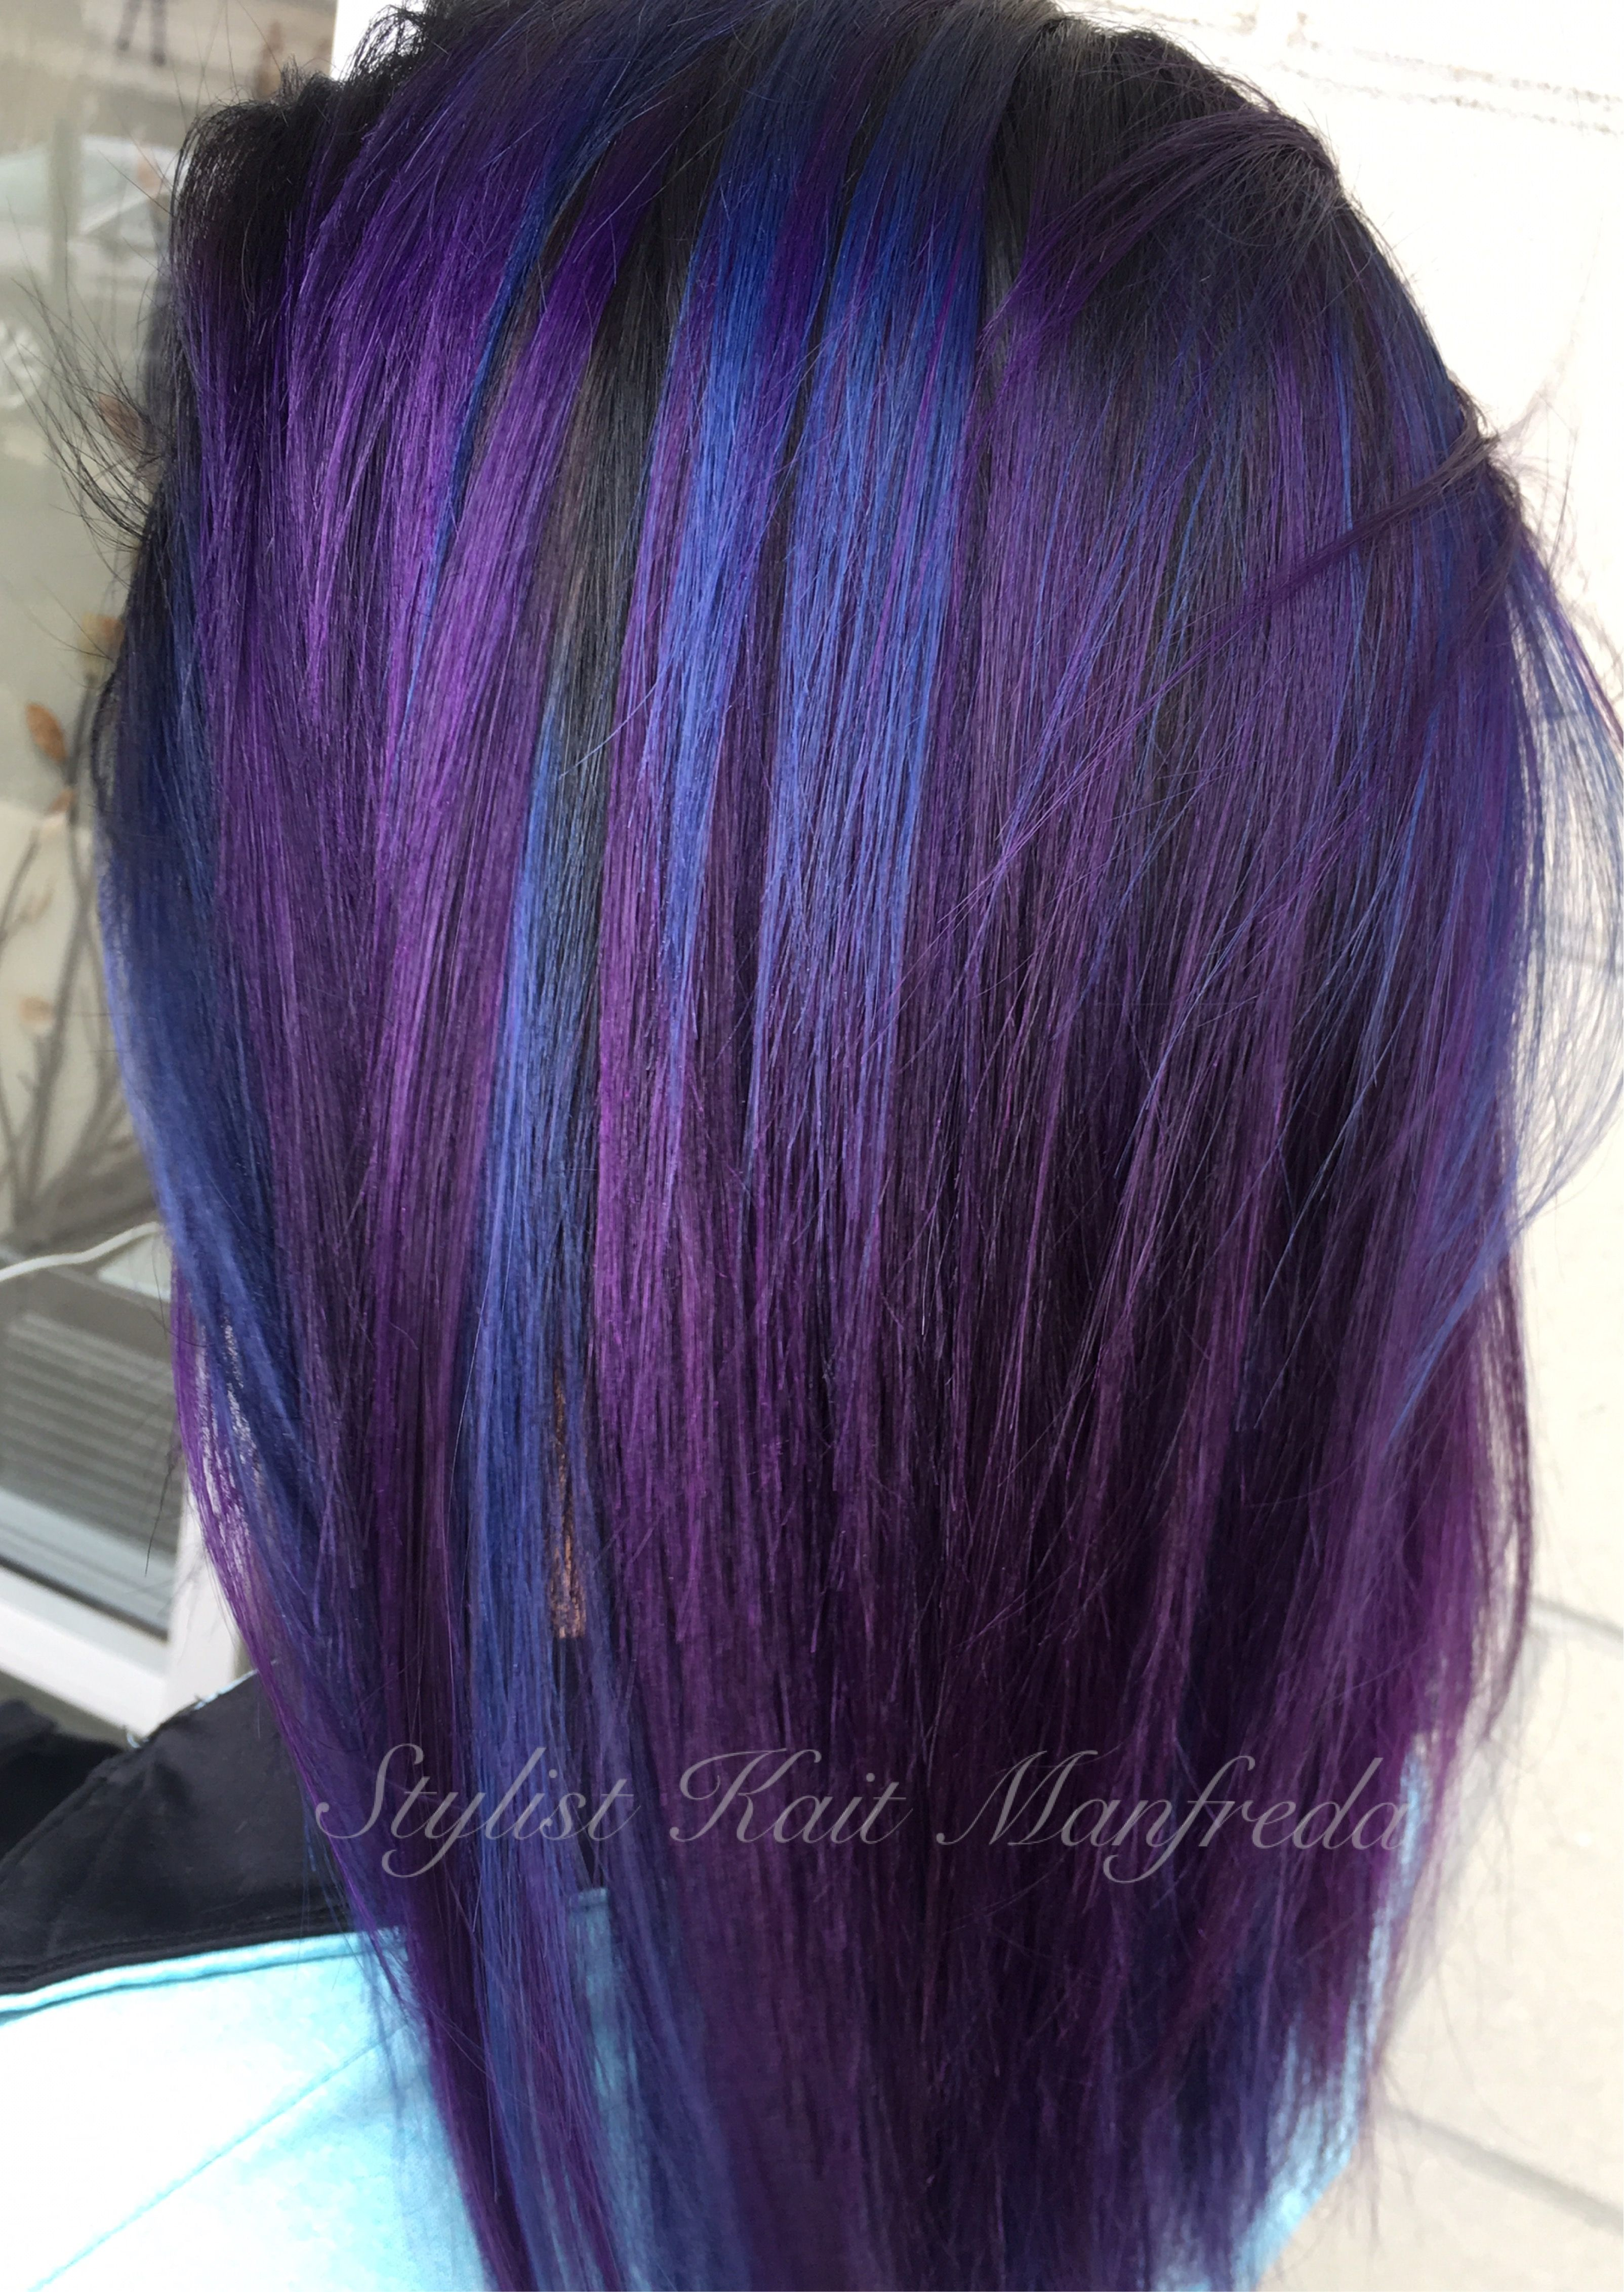 Blue And Purple Hair With Black Shadow Root Using Joico Intensity Colors By Stylist Kait Manfreda Purple Hair Vivid Hair Color Hair Color Purple